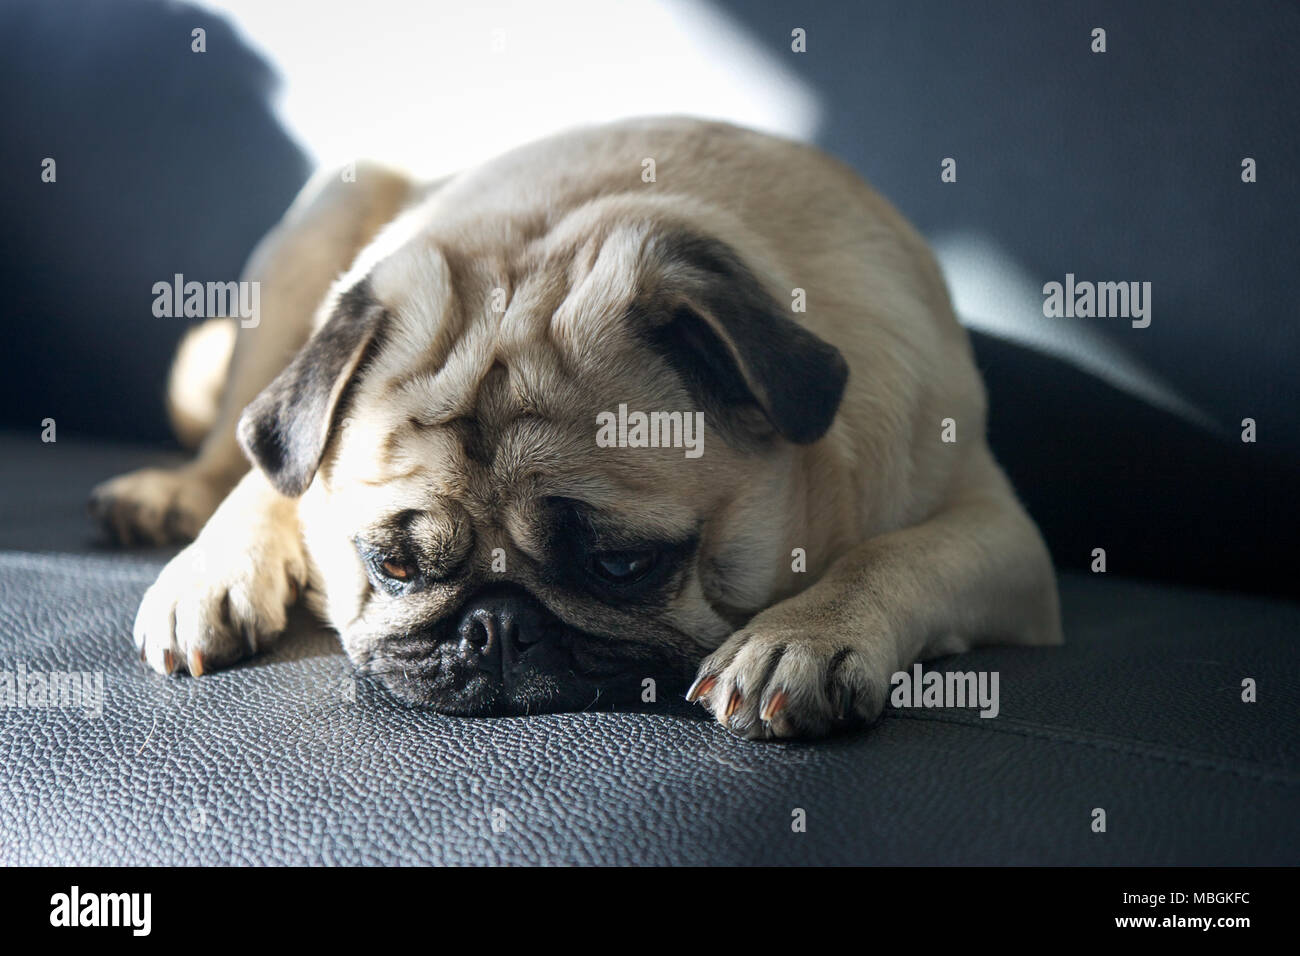 Le PUG misérable sur le canapé Photo Stock